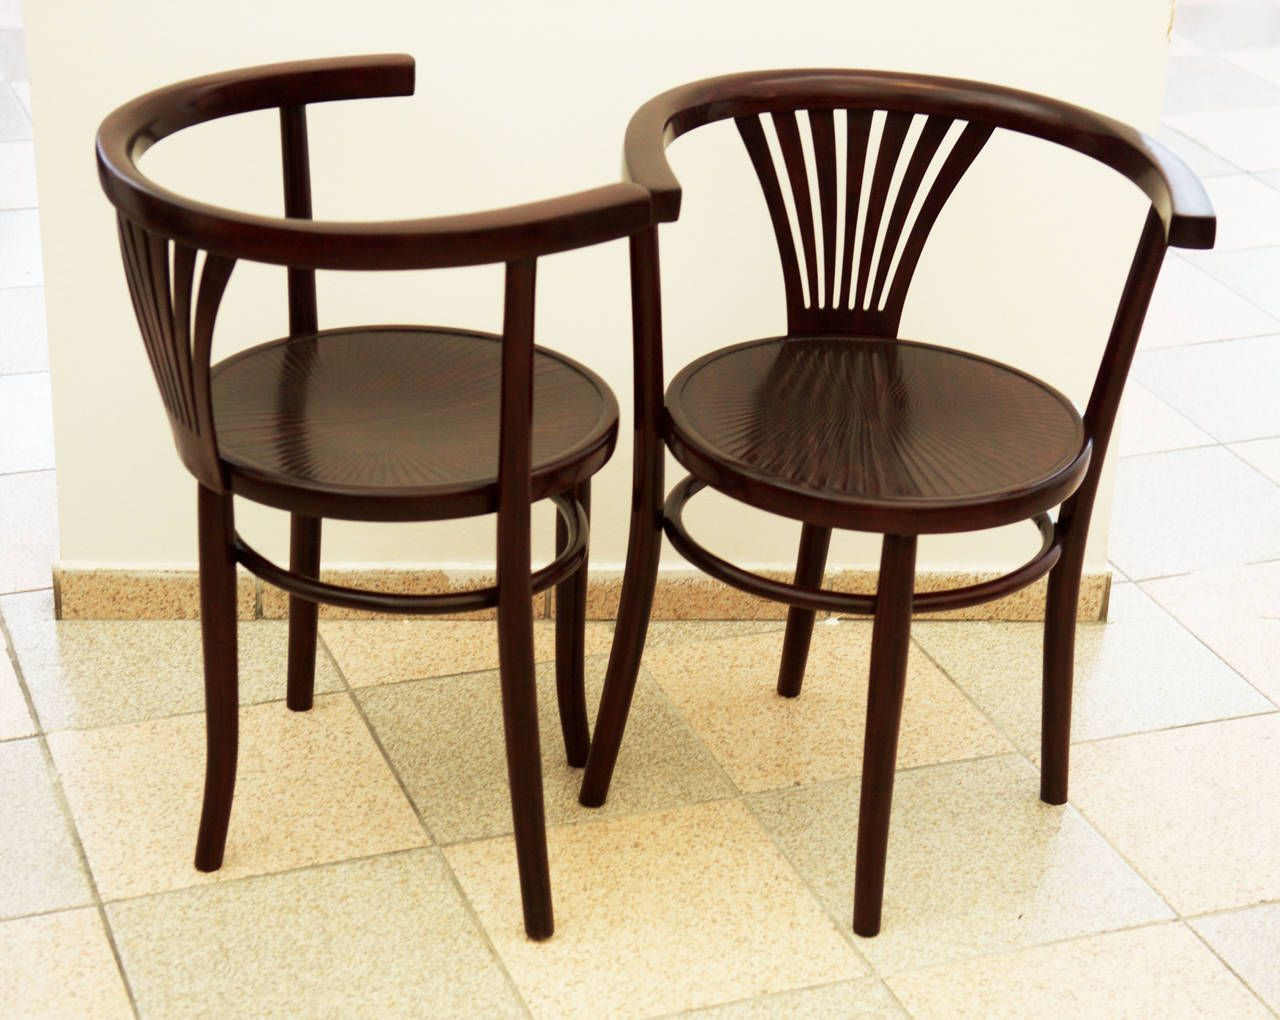 Antique side chair by michael thonet for thonet up zavody for Side chairs for sale